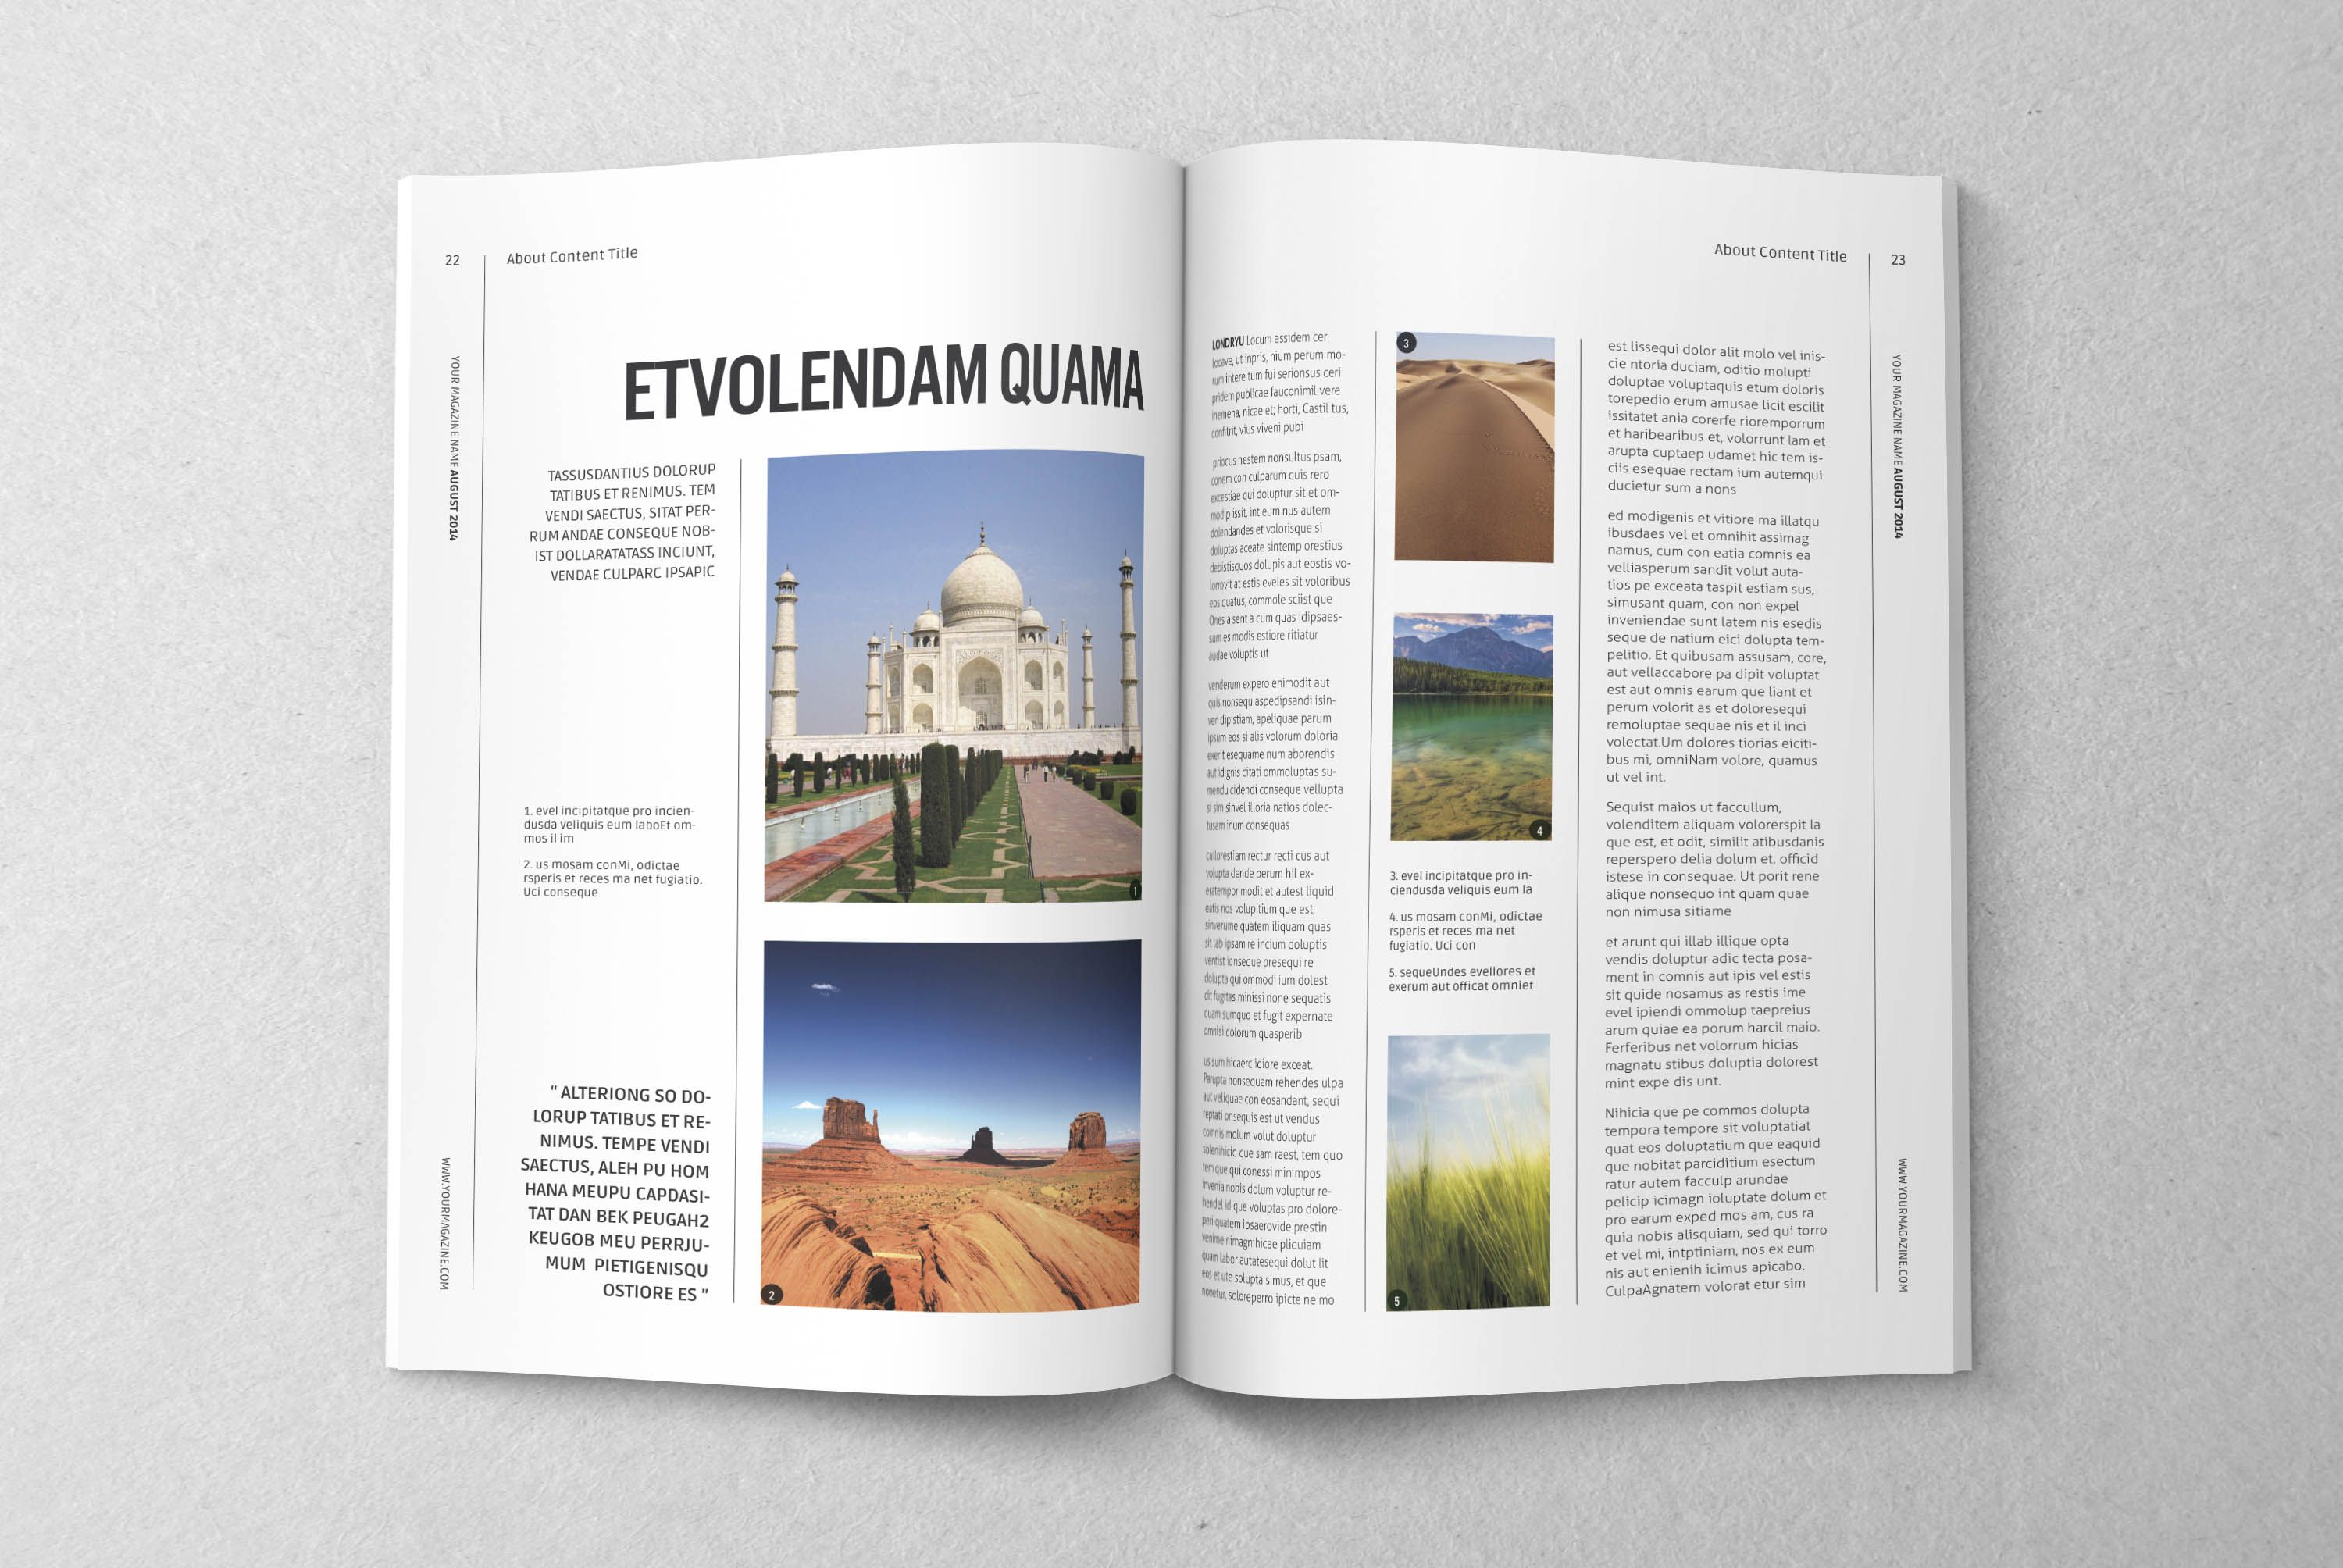 A5 Magz Editorial Book Tmplt 05 Indesign Magazine Templates Magazine Template Photoshop Photography